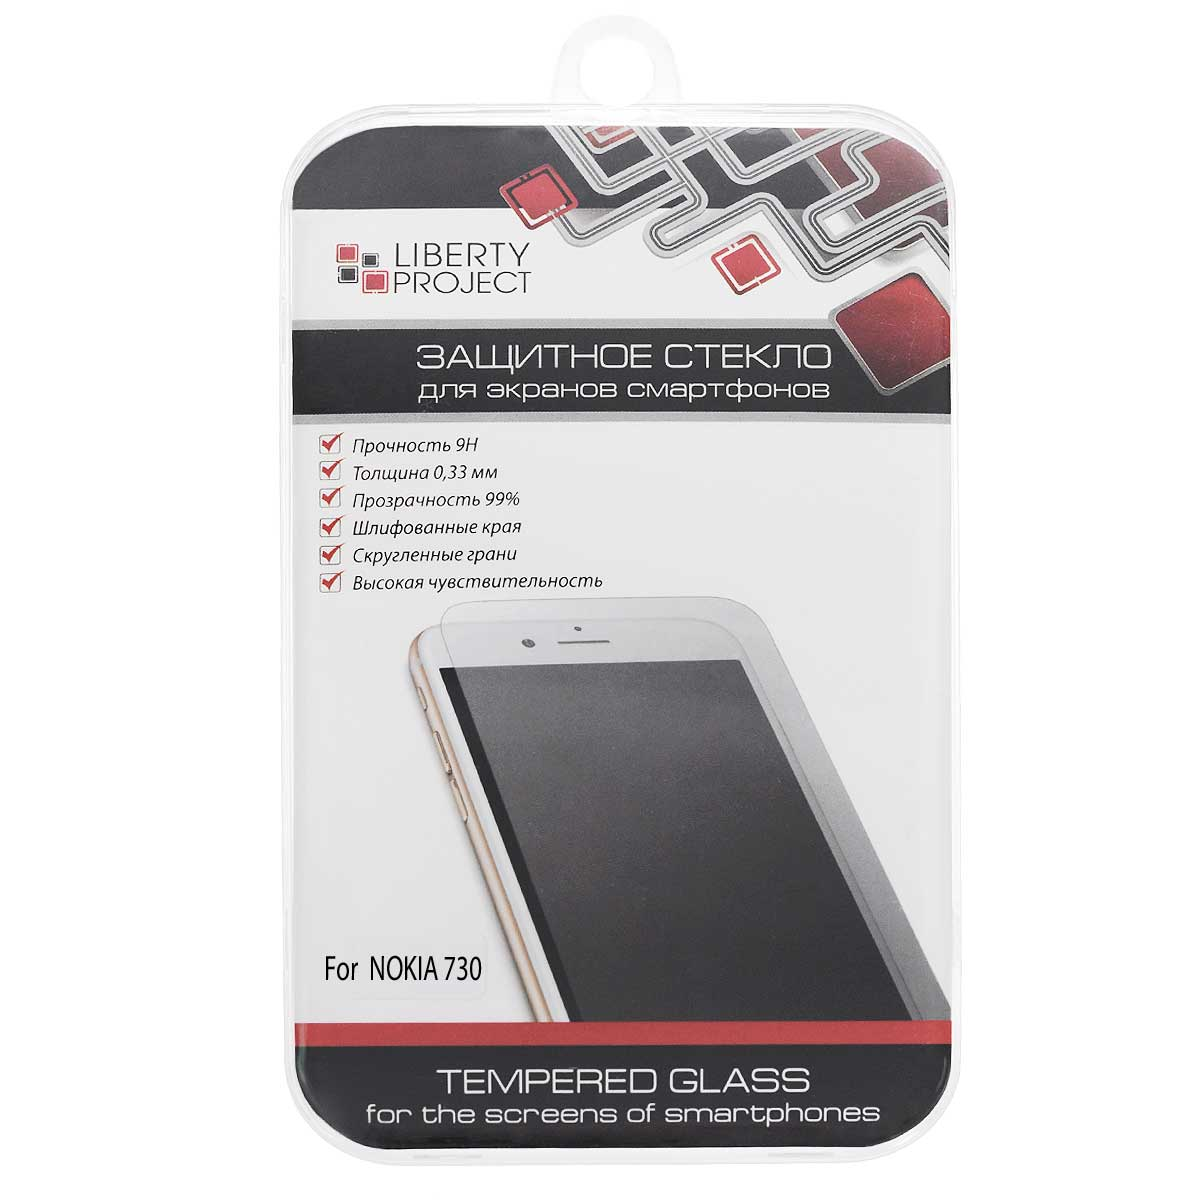 Liberty Project Tempered Glass защитное стекло для Nokia 730, Clear (0,33 мм) liberty project tempered glass защитное стекло для nokia 730 clear 0 33 мм